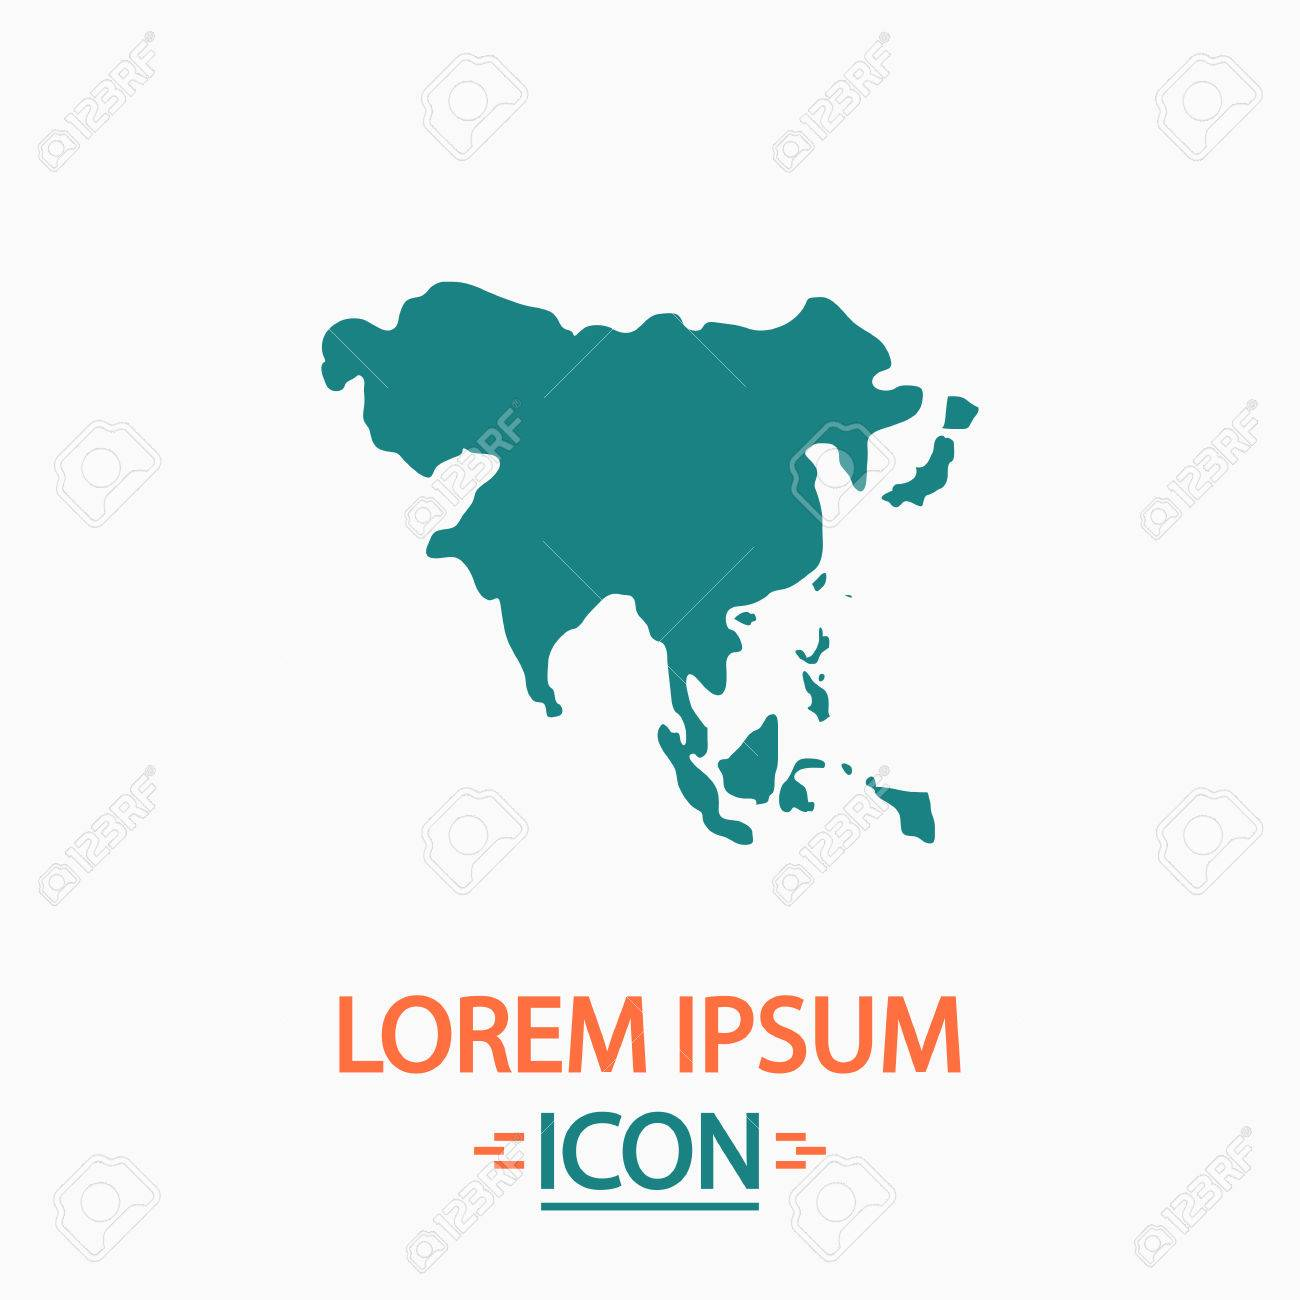 Asia flat icon on white background simple vector illustration asia flat icon on white background simple vector illustration stock vector 57731231 gumiabroncs Images